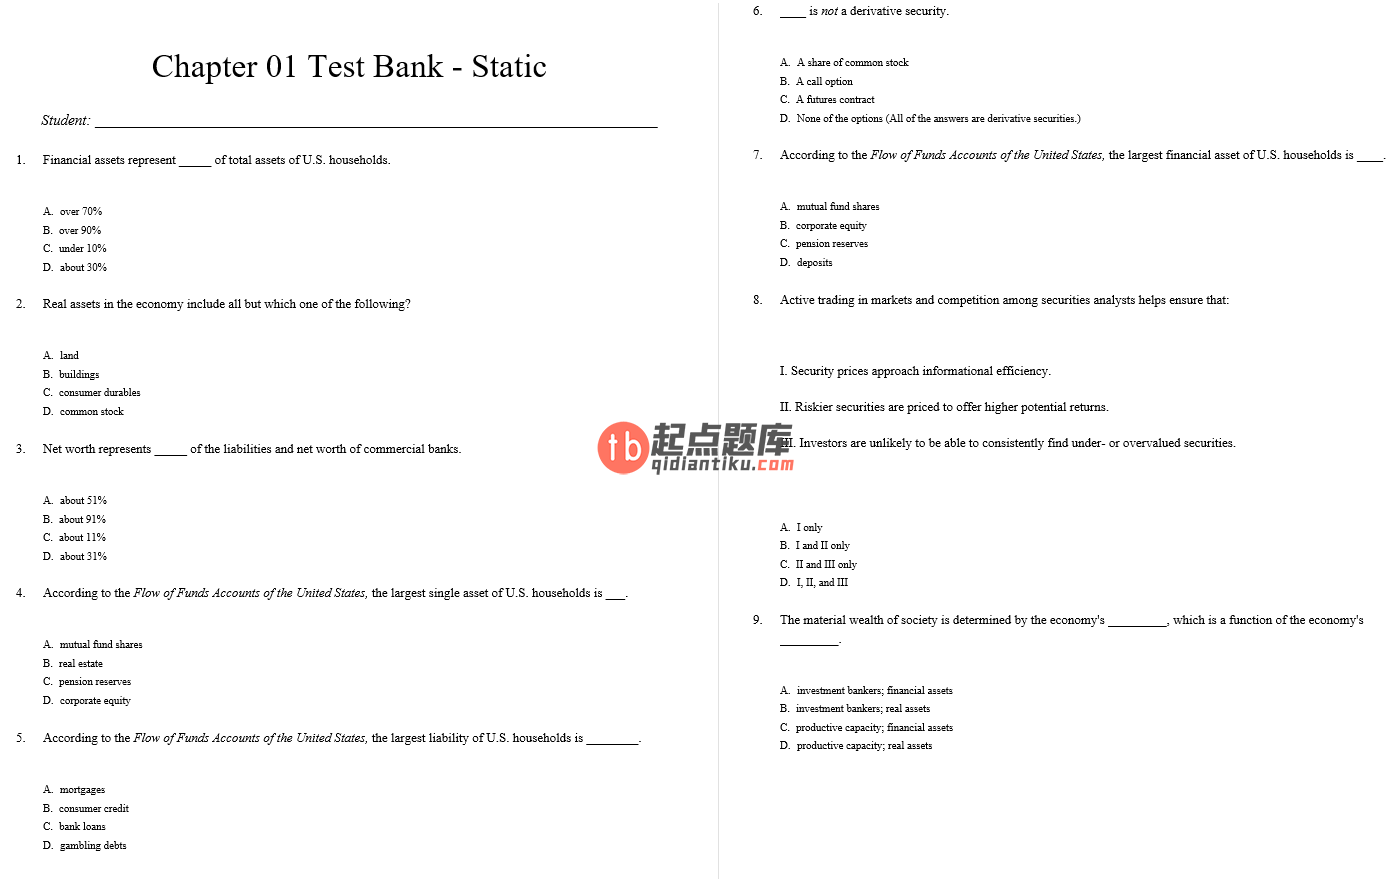 test bank for Essentials of Investments 10th Edition的图片 3